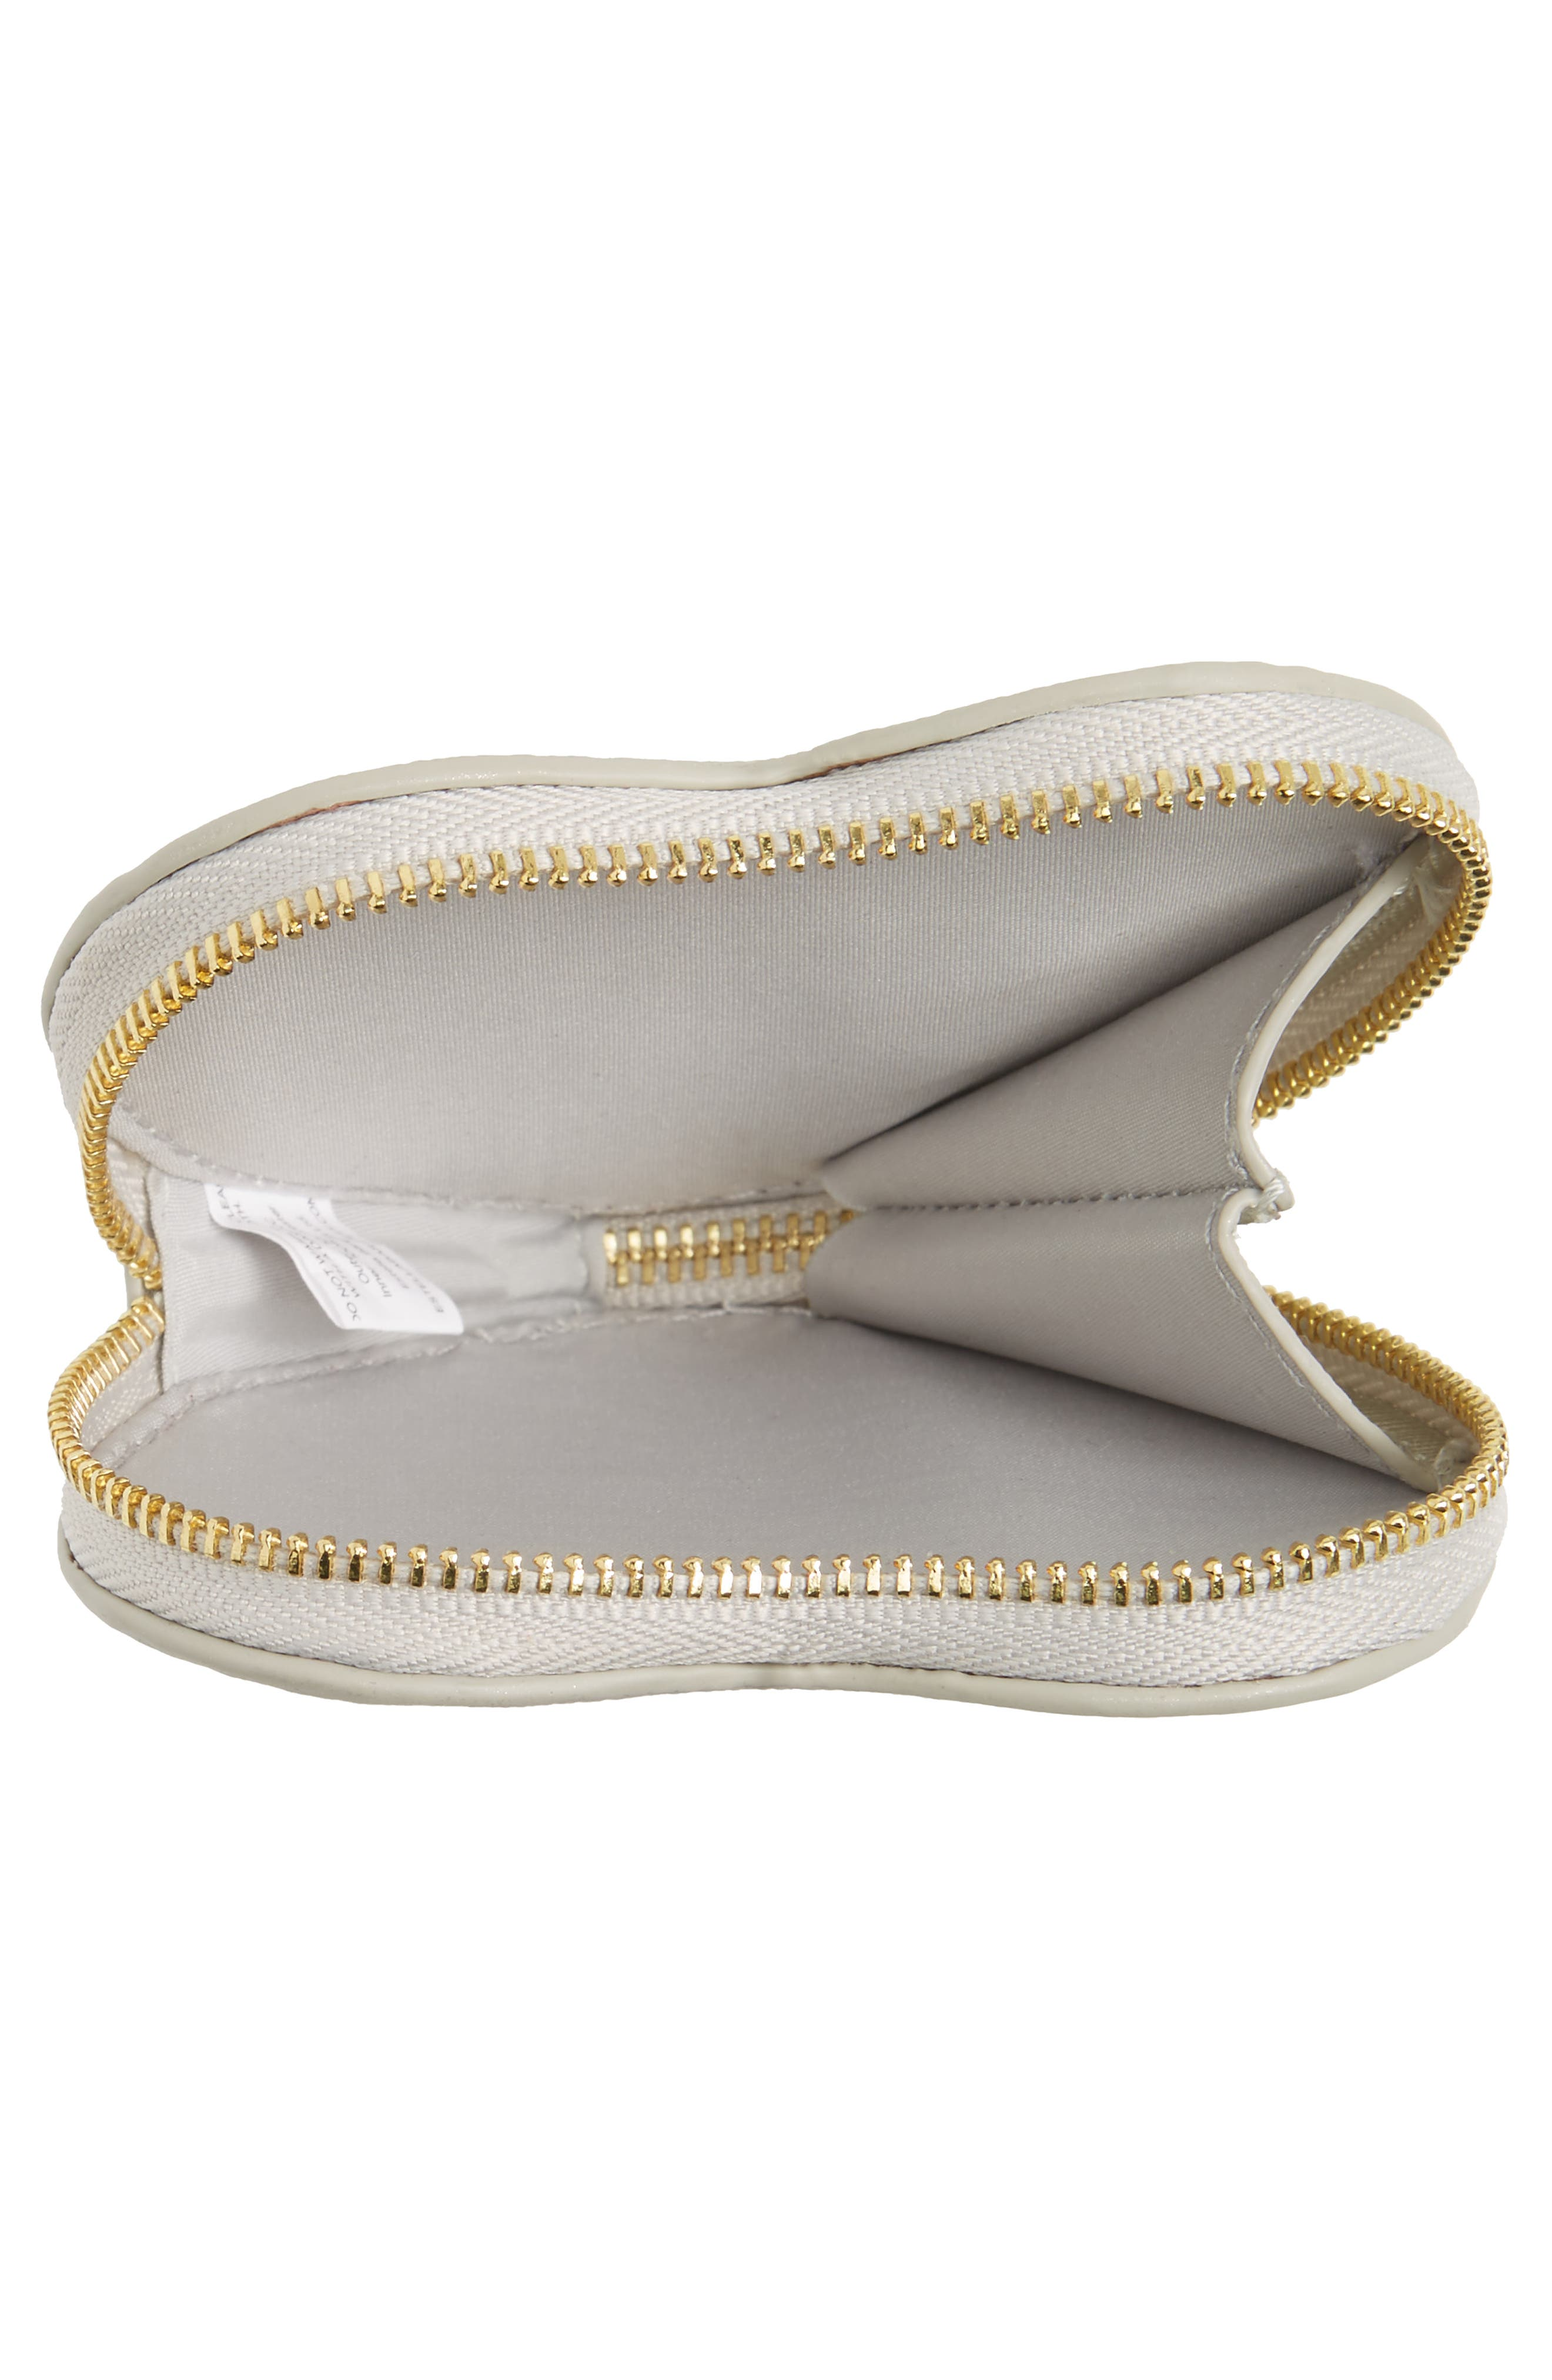 Heart Dream Faux Leather Coin Purse,                             Alternate thumbnail 4, color,                             Silver